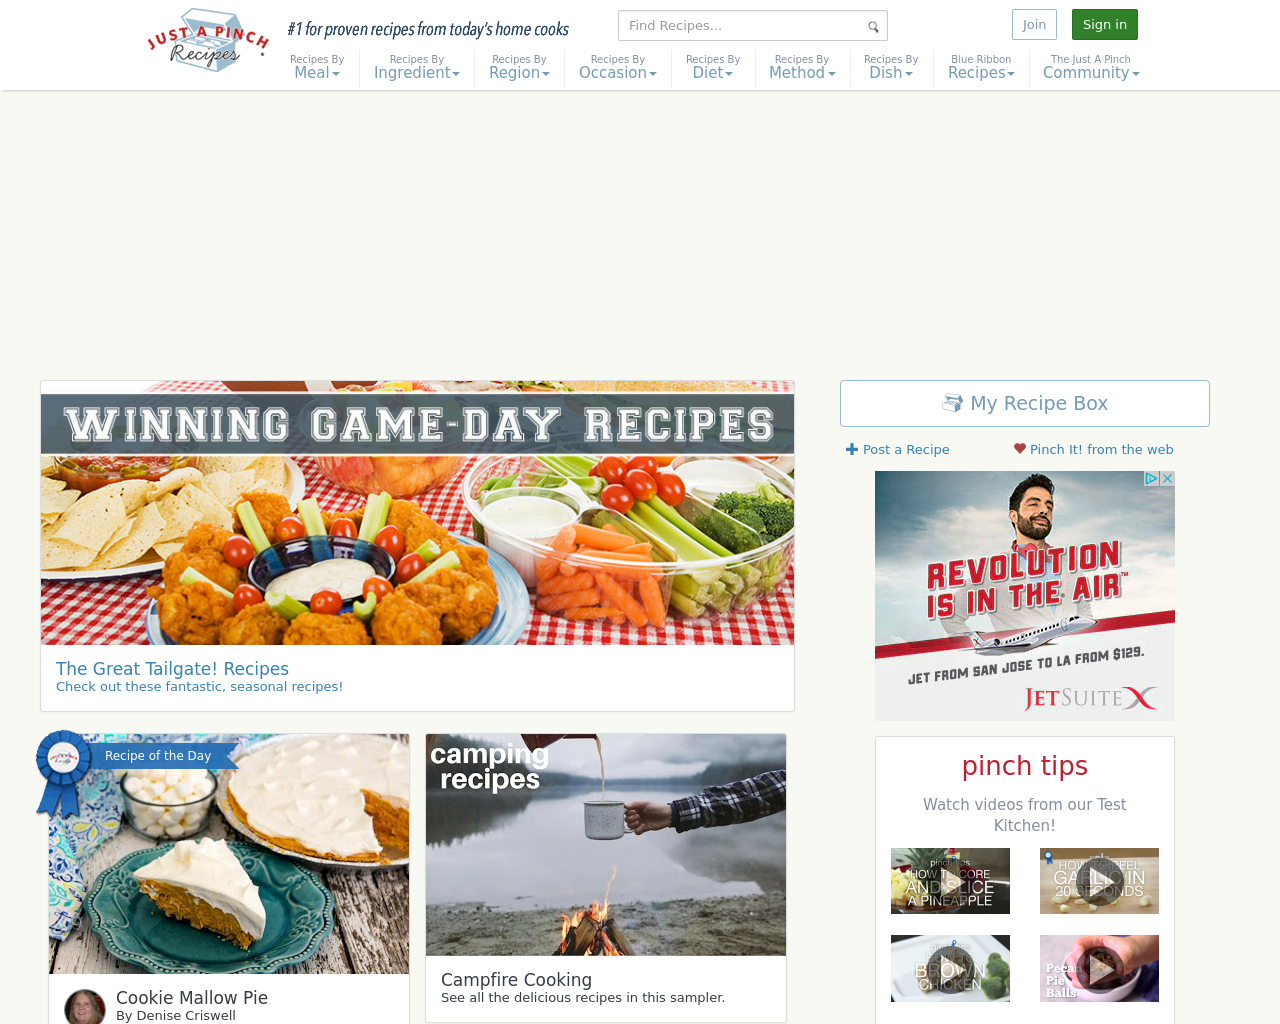 Just-A-Pinch-Recipes-Advertising-Reviews-Pricing